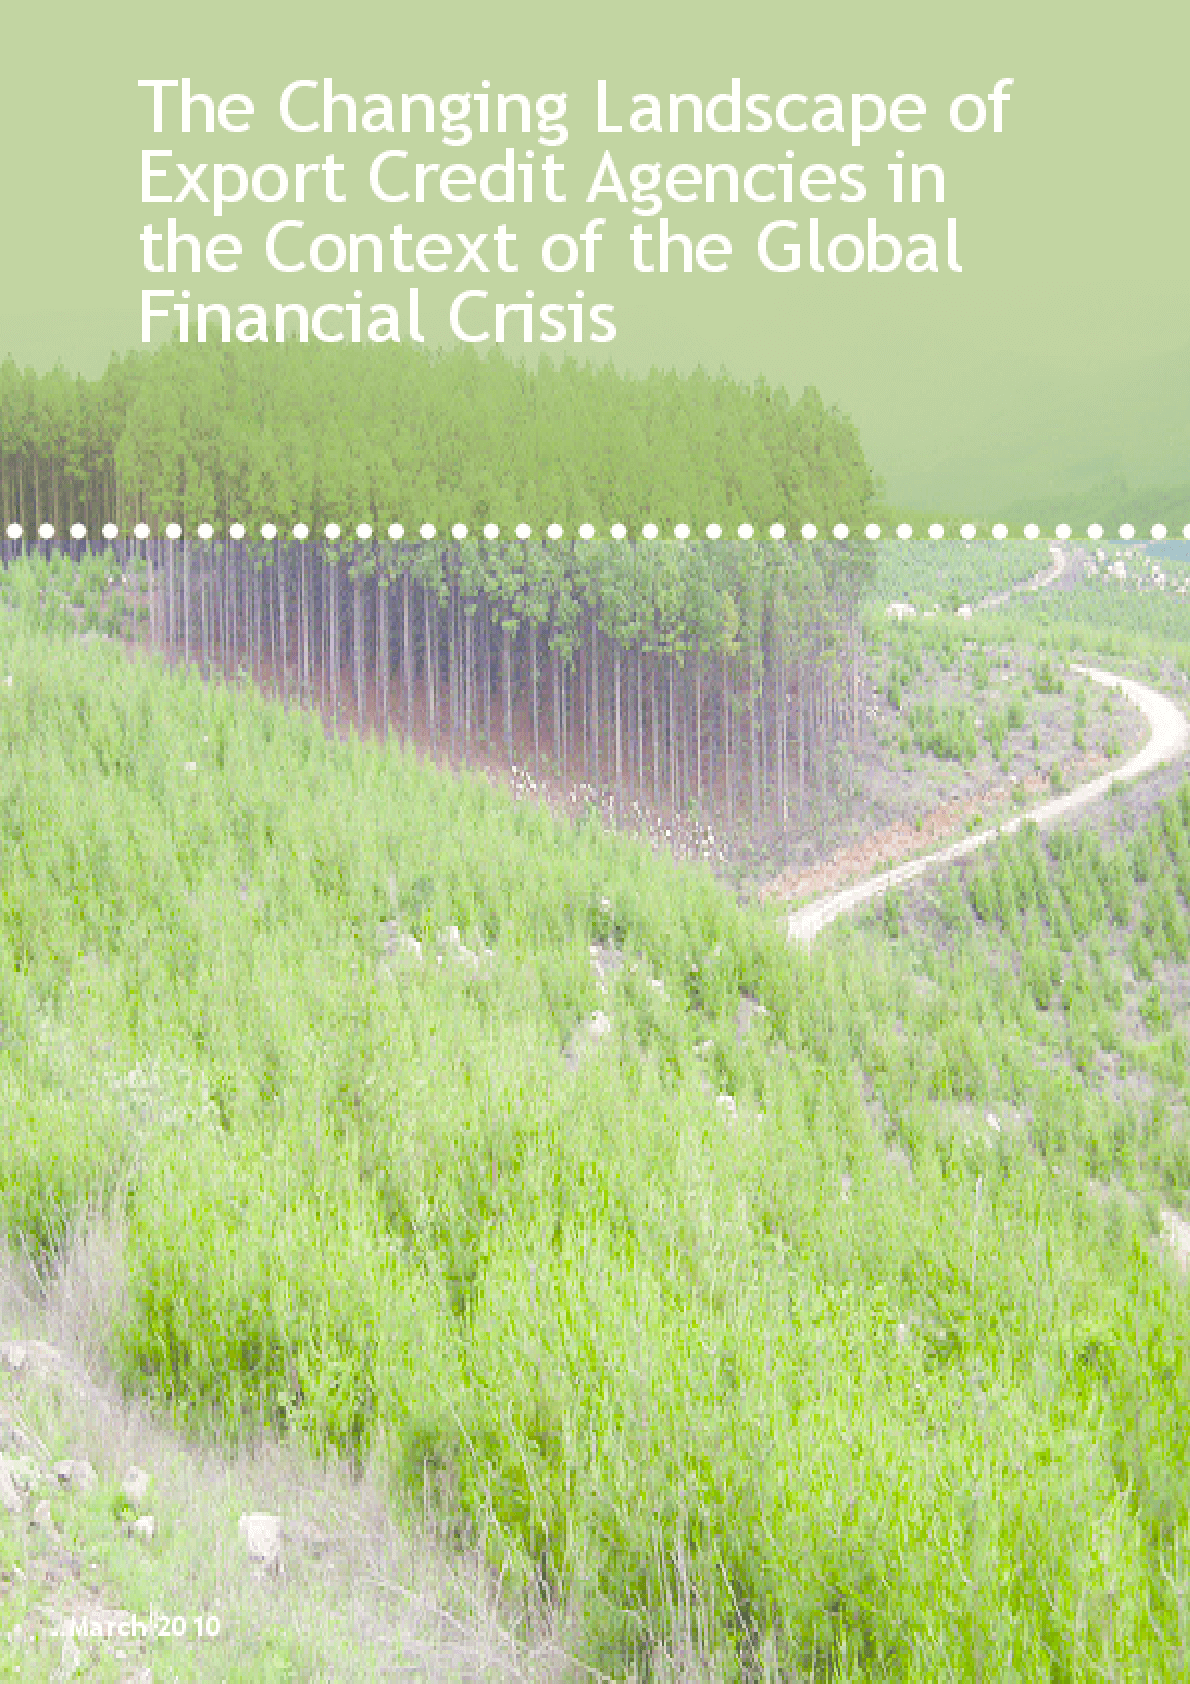 The Changing Landscape of Export Credit Agencies in the Context of the Global Financial Crisis